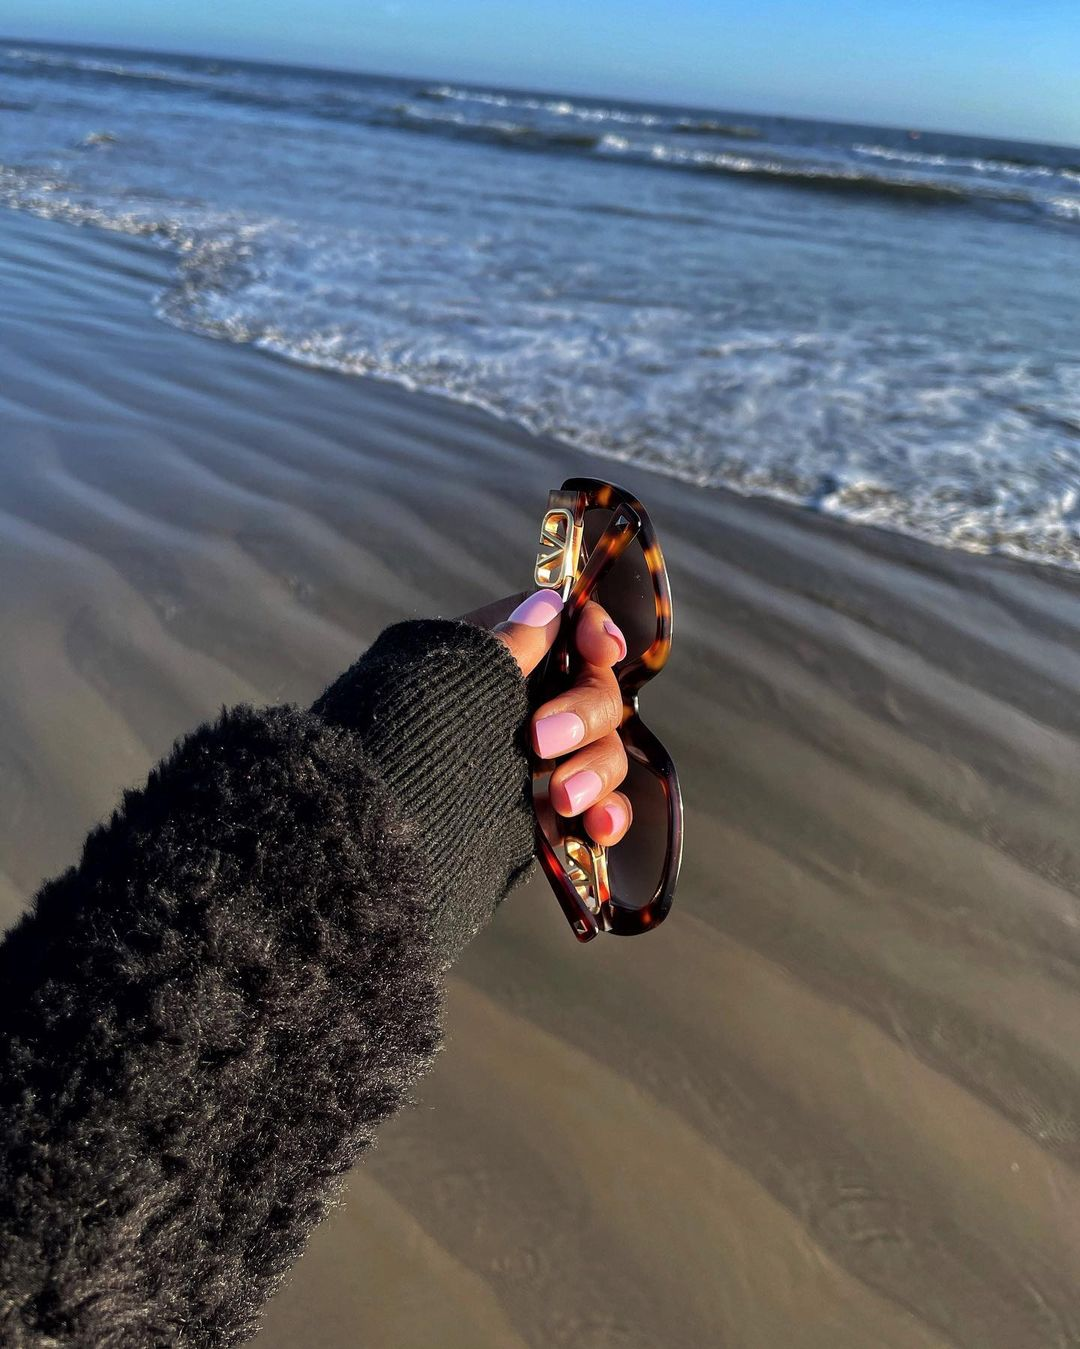 Purple press on nails while holding glasses at the beach